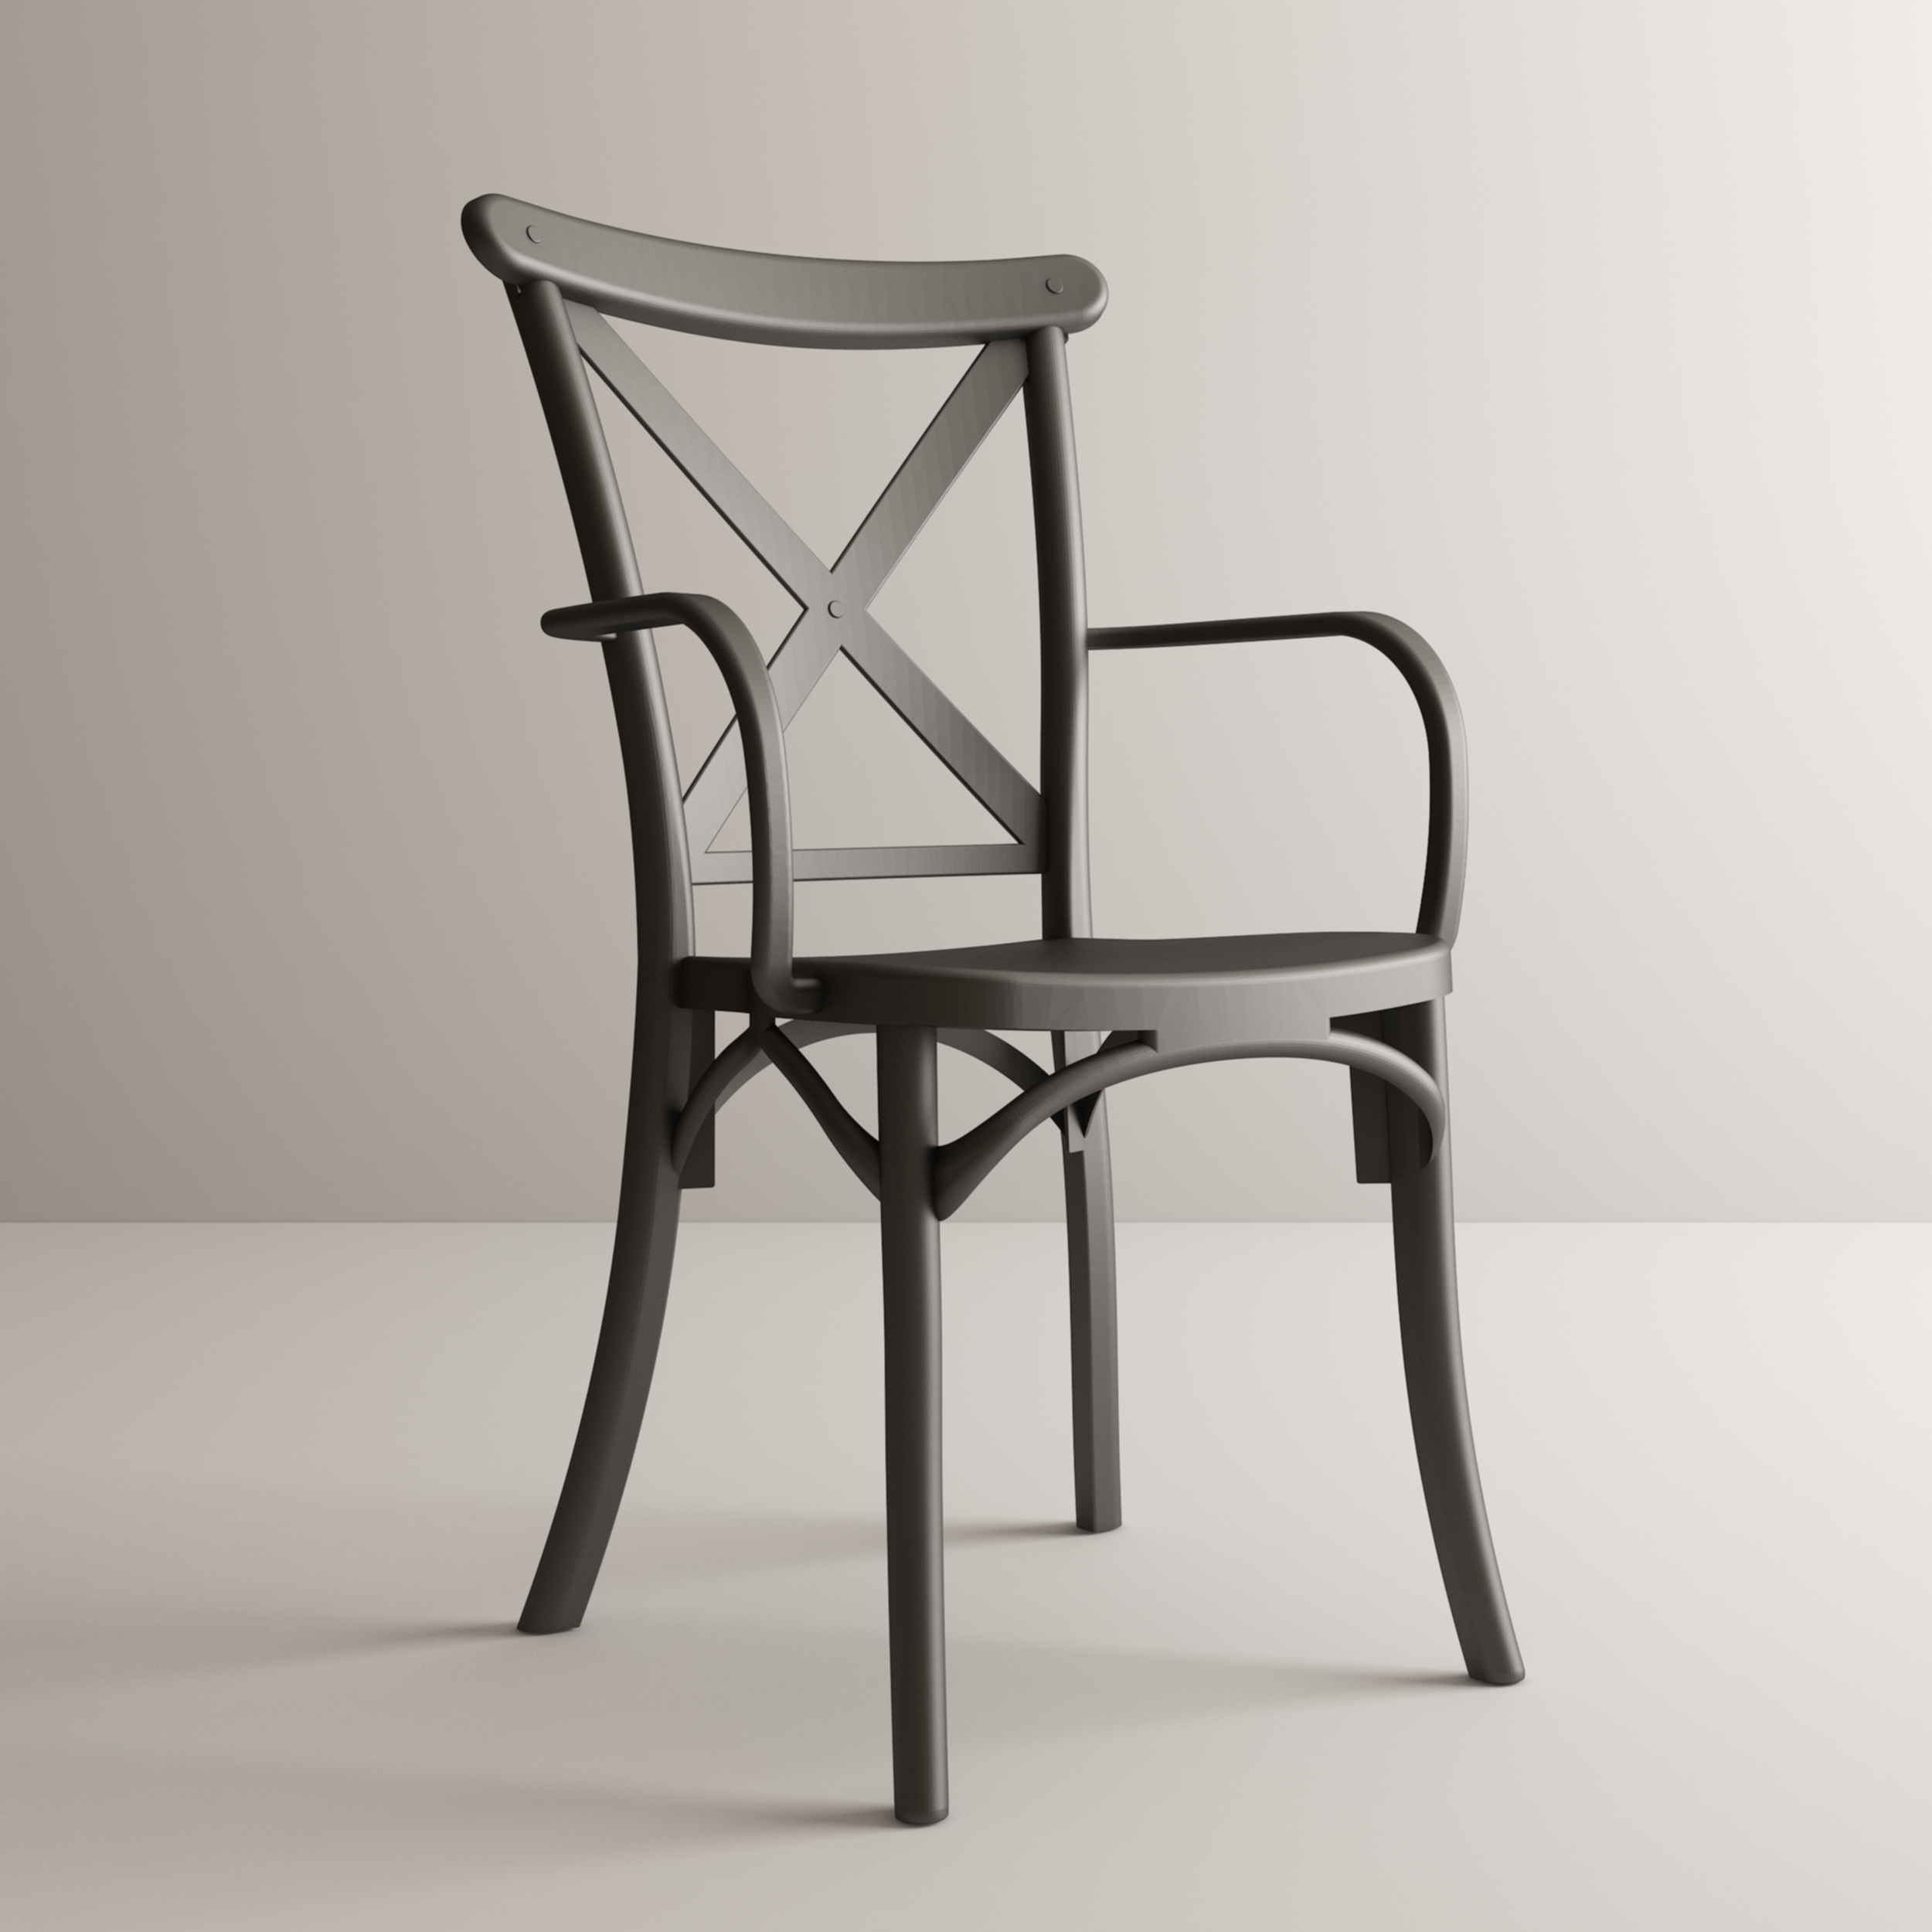 CROSS XL Chair